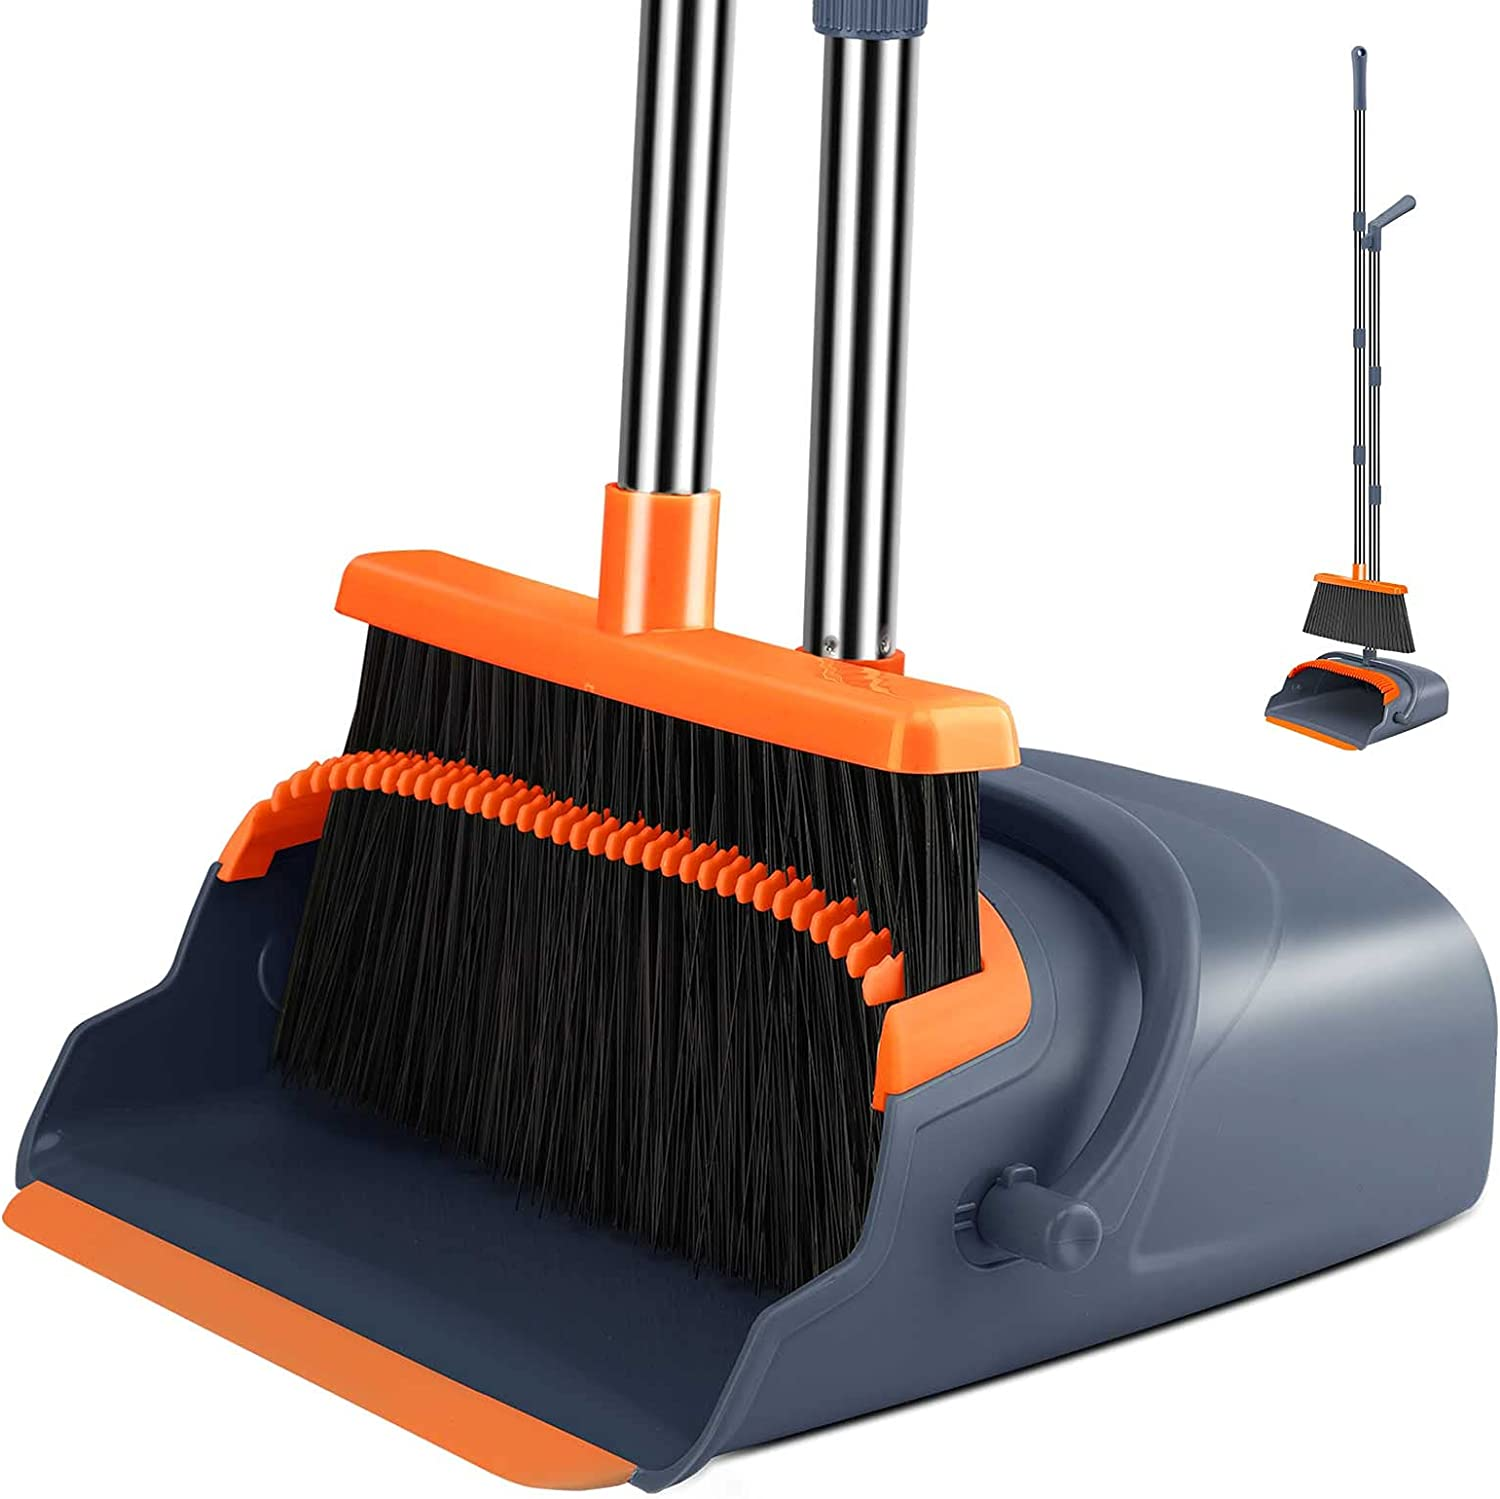 Kelamayi 2021 Upgrade Broom and Dustpan Set, Large Size and Stiff Broom Dust pan with 55.9 inch Long Handle, Upright Dustpan Broom Set Ideal for Indoor Outdoor Garage Kitchen Room Office Lobby Use : Health & Household